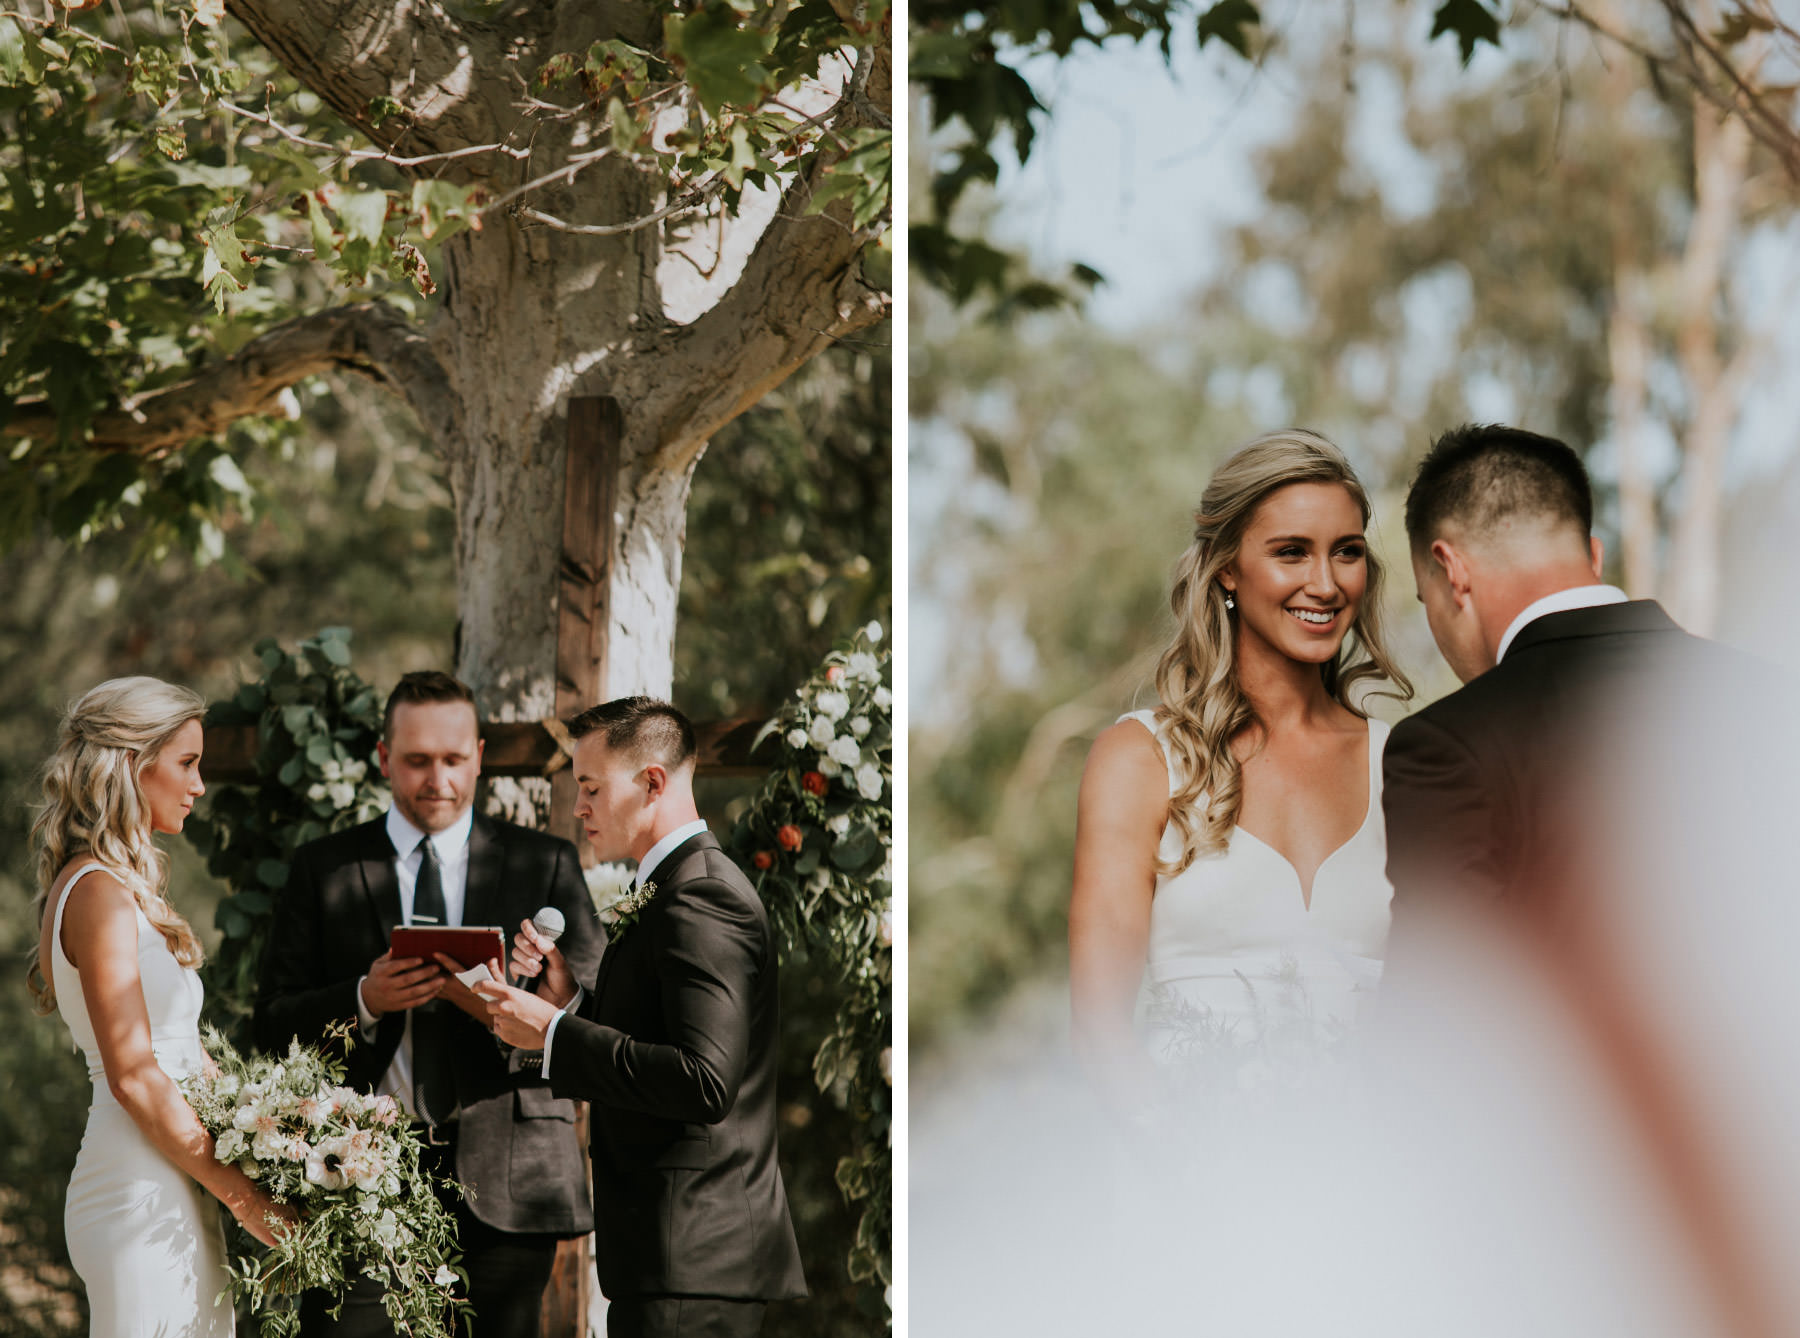 Bride and groom exchanging vows in outdoor ceremony in San Diego